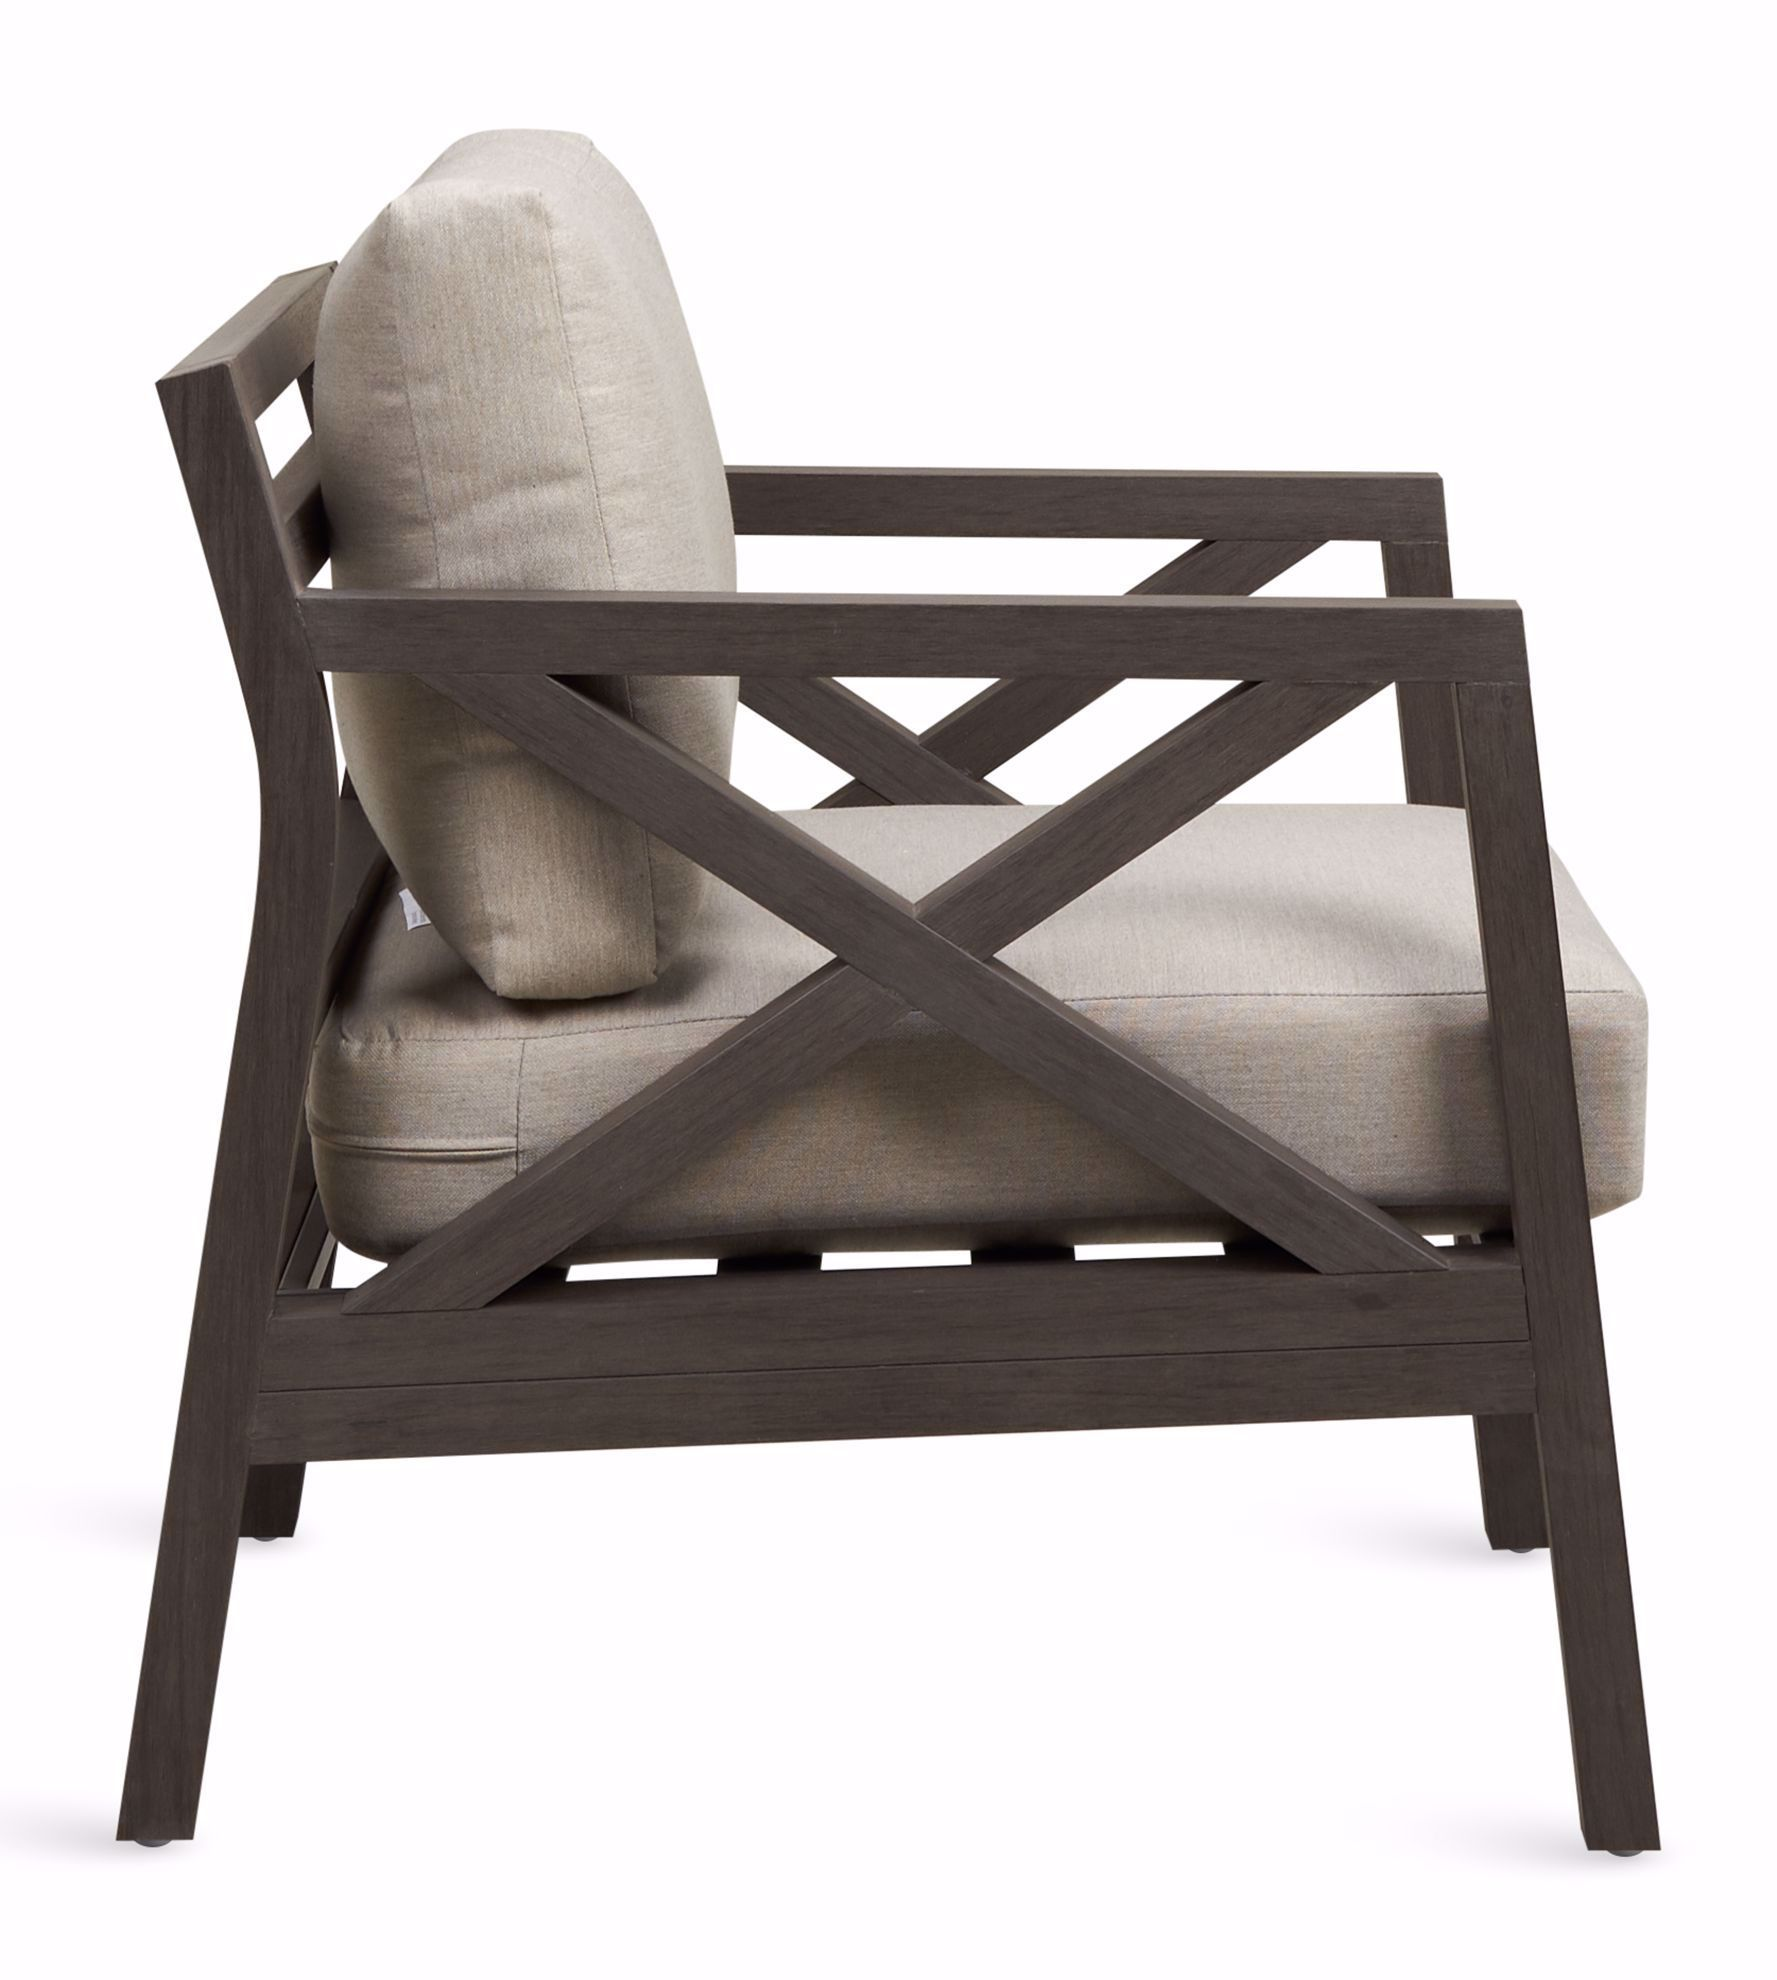 Picture of Kona Cushion Chair